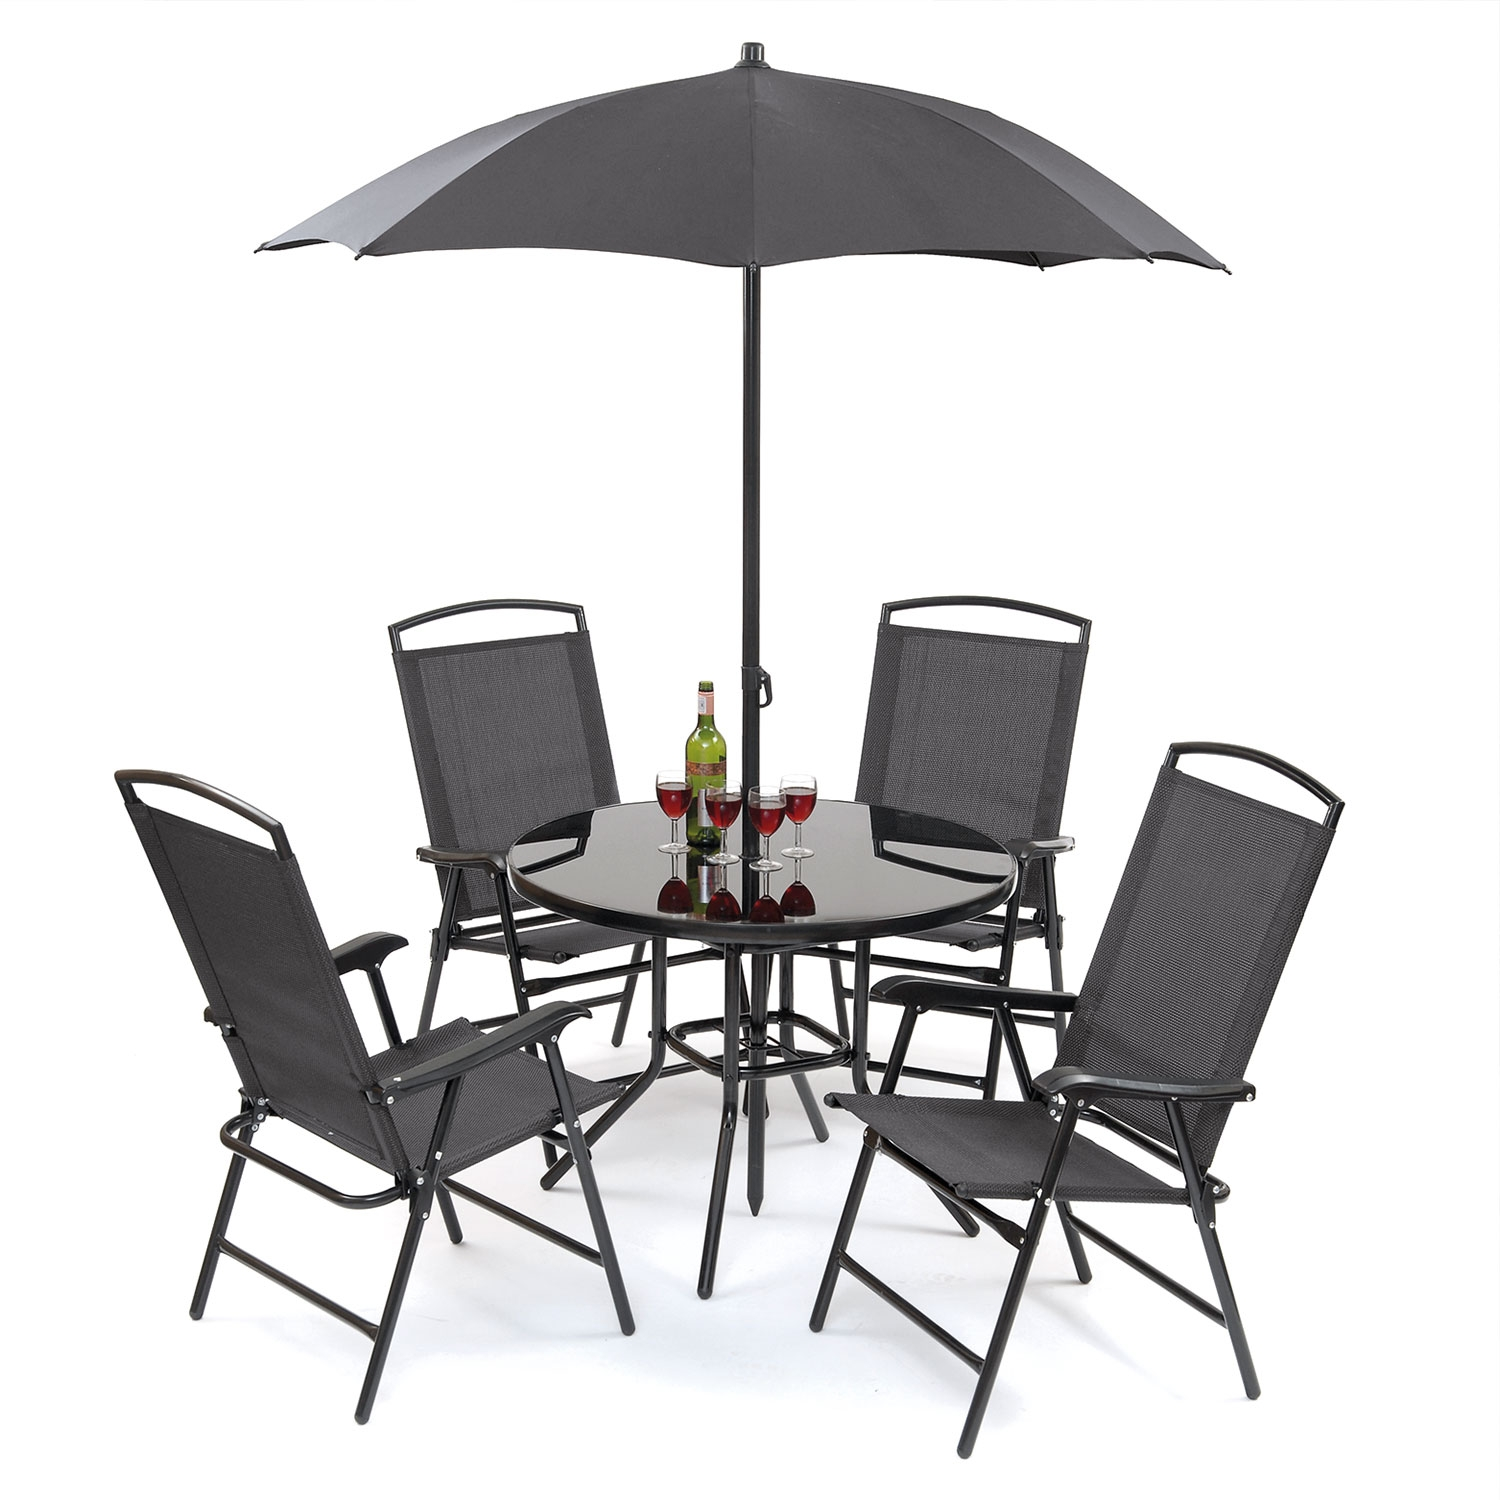 Image of Havana Charcoal Deluxe Folding Collection